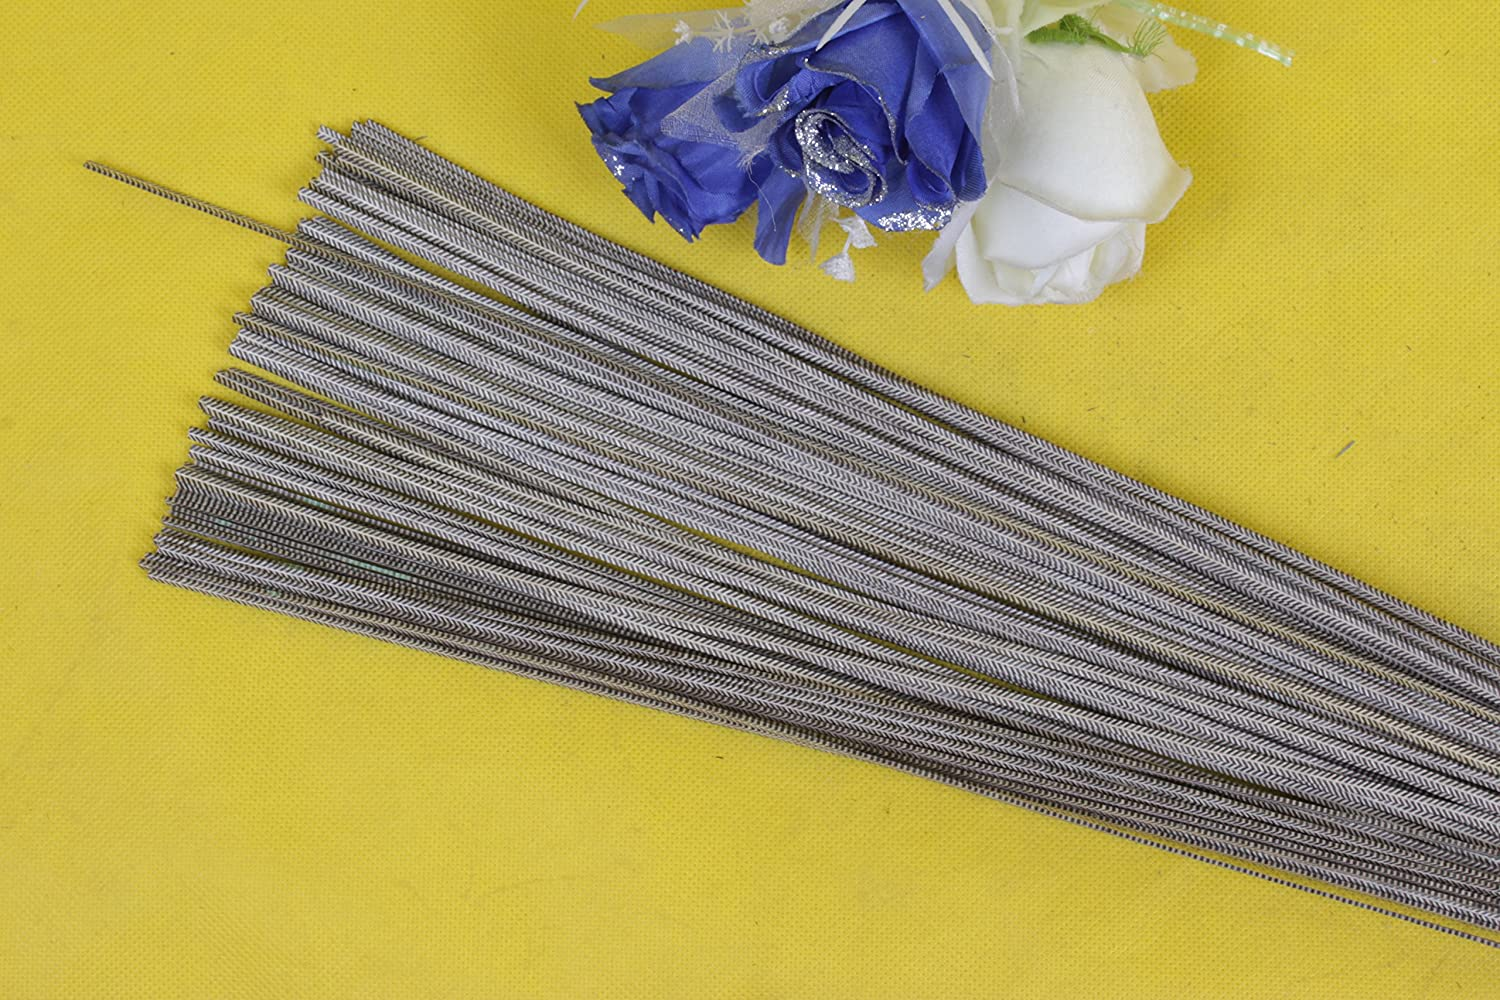 Yinfente 20x Guitar Strip Inlay P Purfling Luthier Discount is also underway NEW